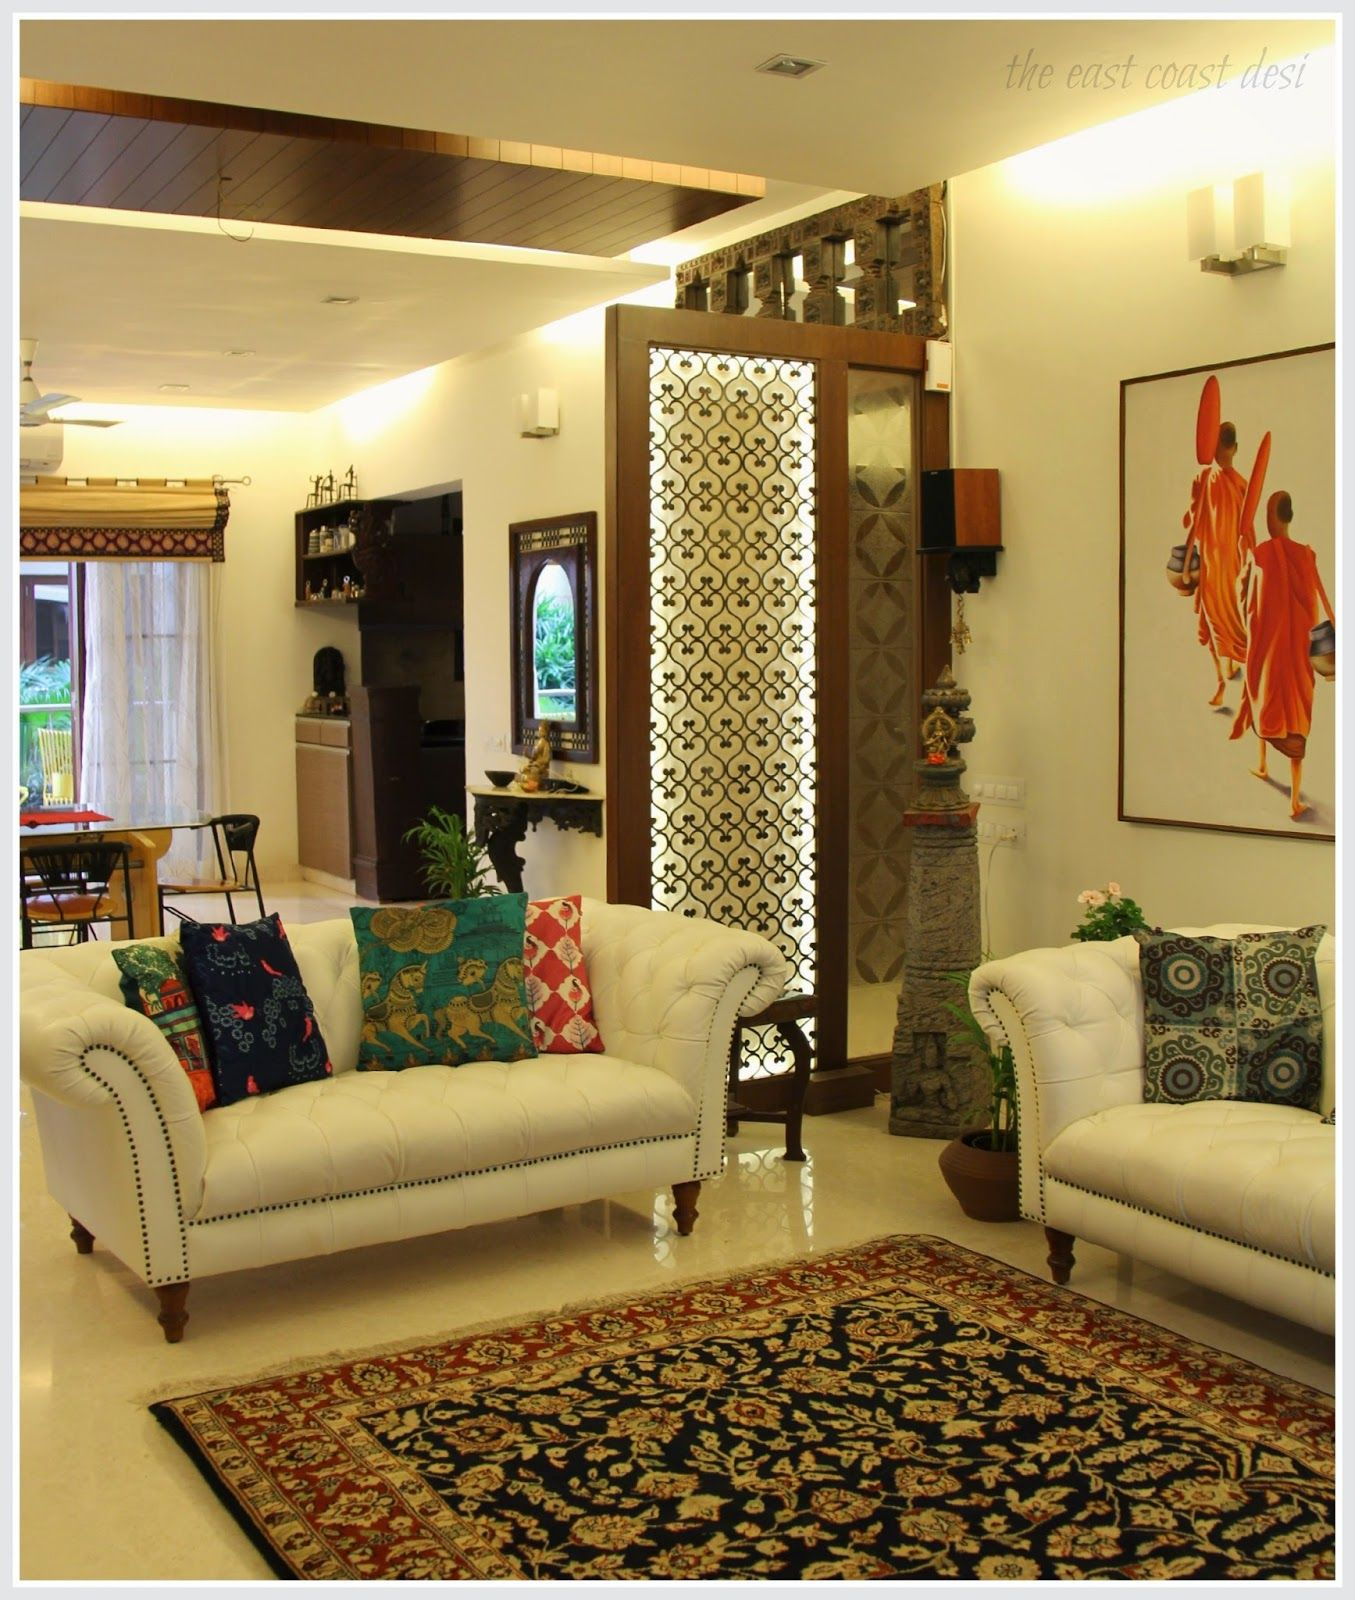 Fabulous The East Coast Desi: Masterful Mixing (Home Tour) | Decor~Home Tour throughout Indian Home Decor Ideas Living Room